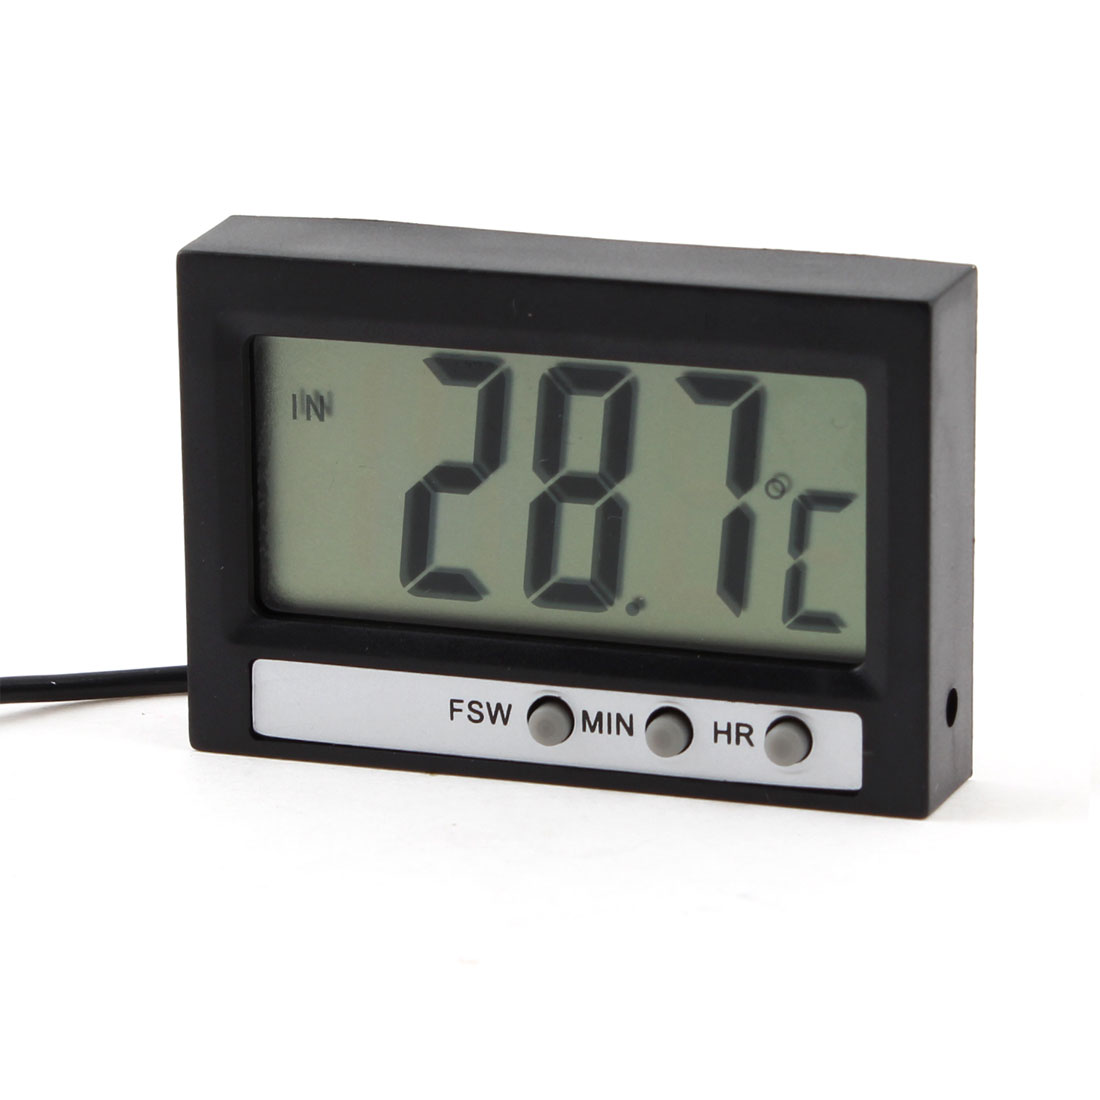 Black Three Button Plastic Housing LCD Display Digital Thermometer